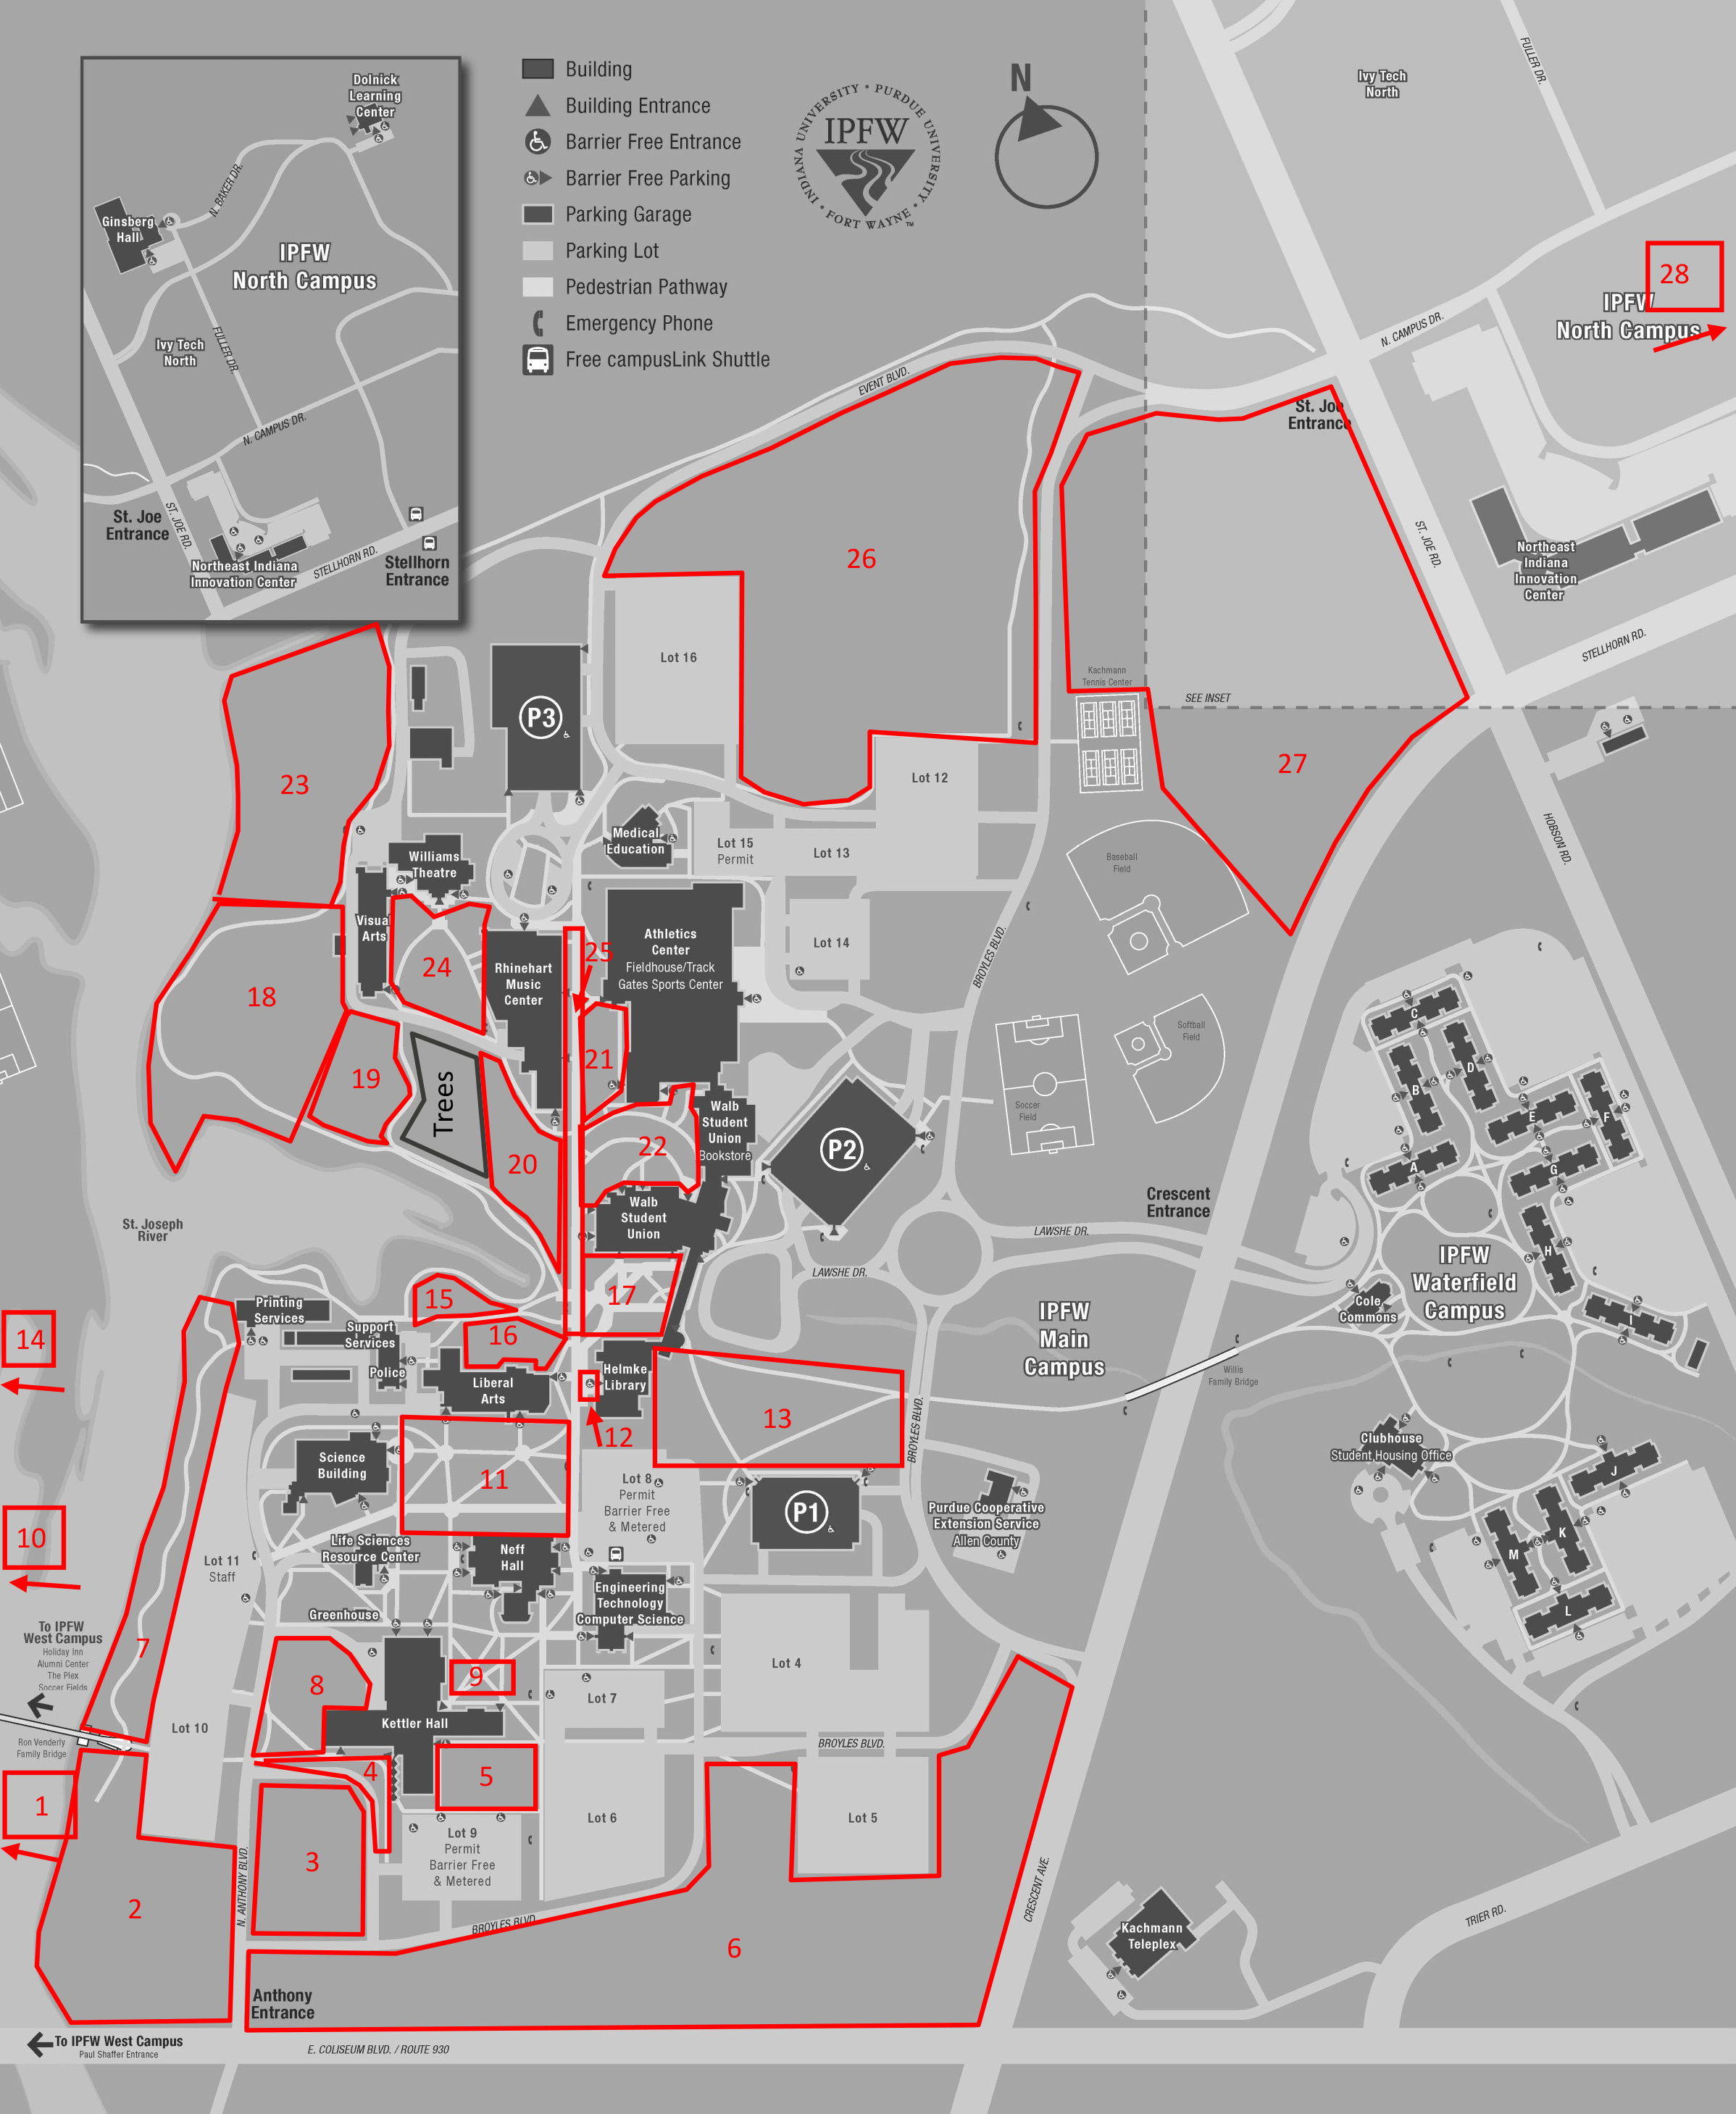 Map of Outdoor Spaces - Purdue University Fort Wayne